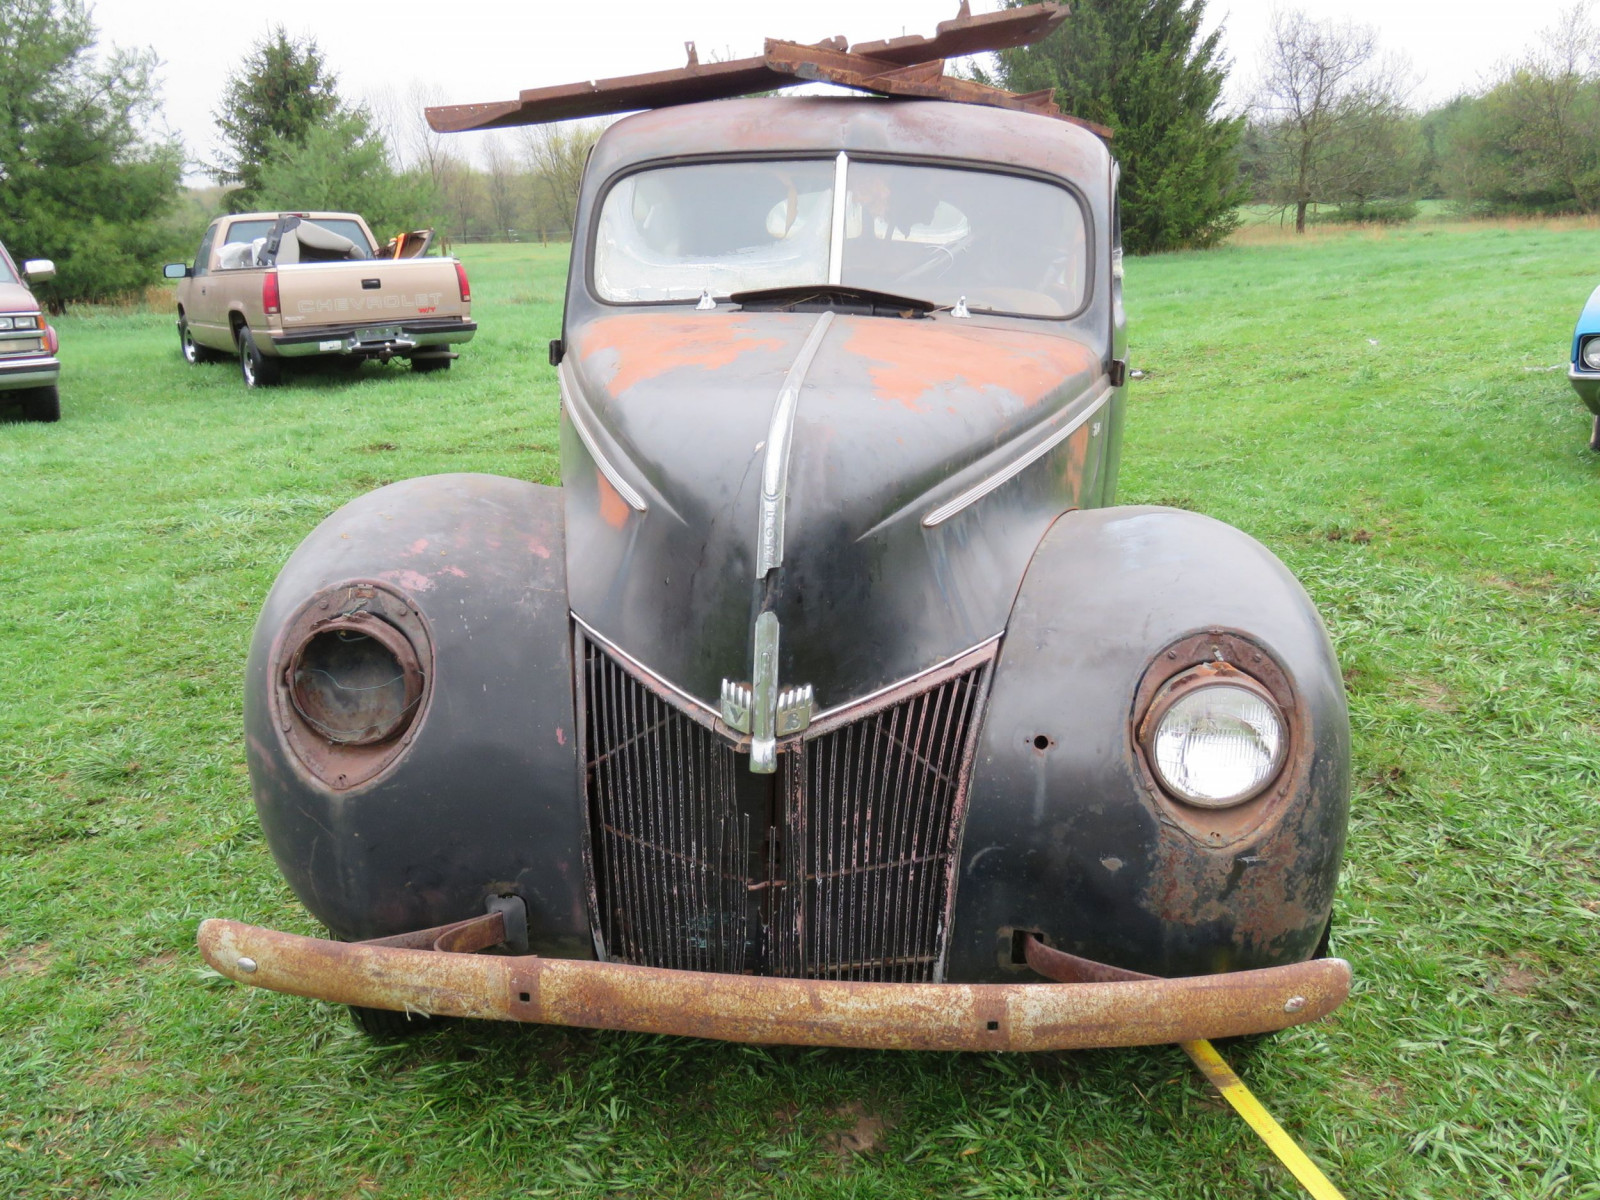 1940 Ford 2dr Sedan for Rod or Restore - Image 2